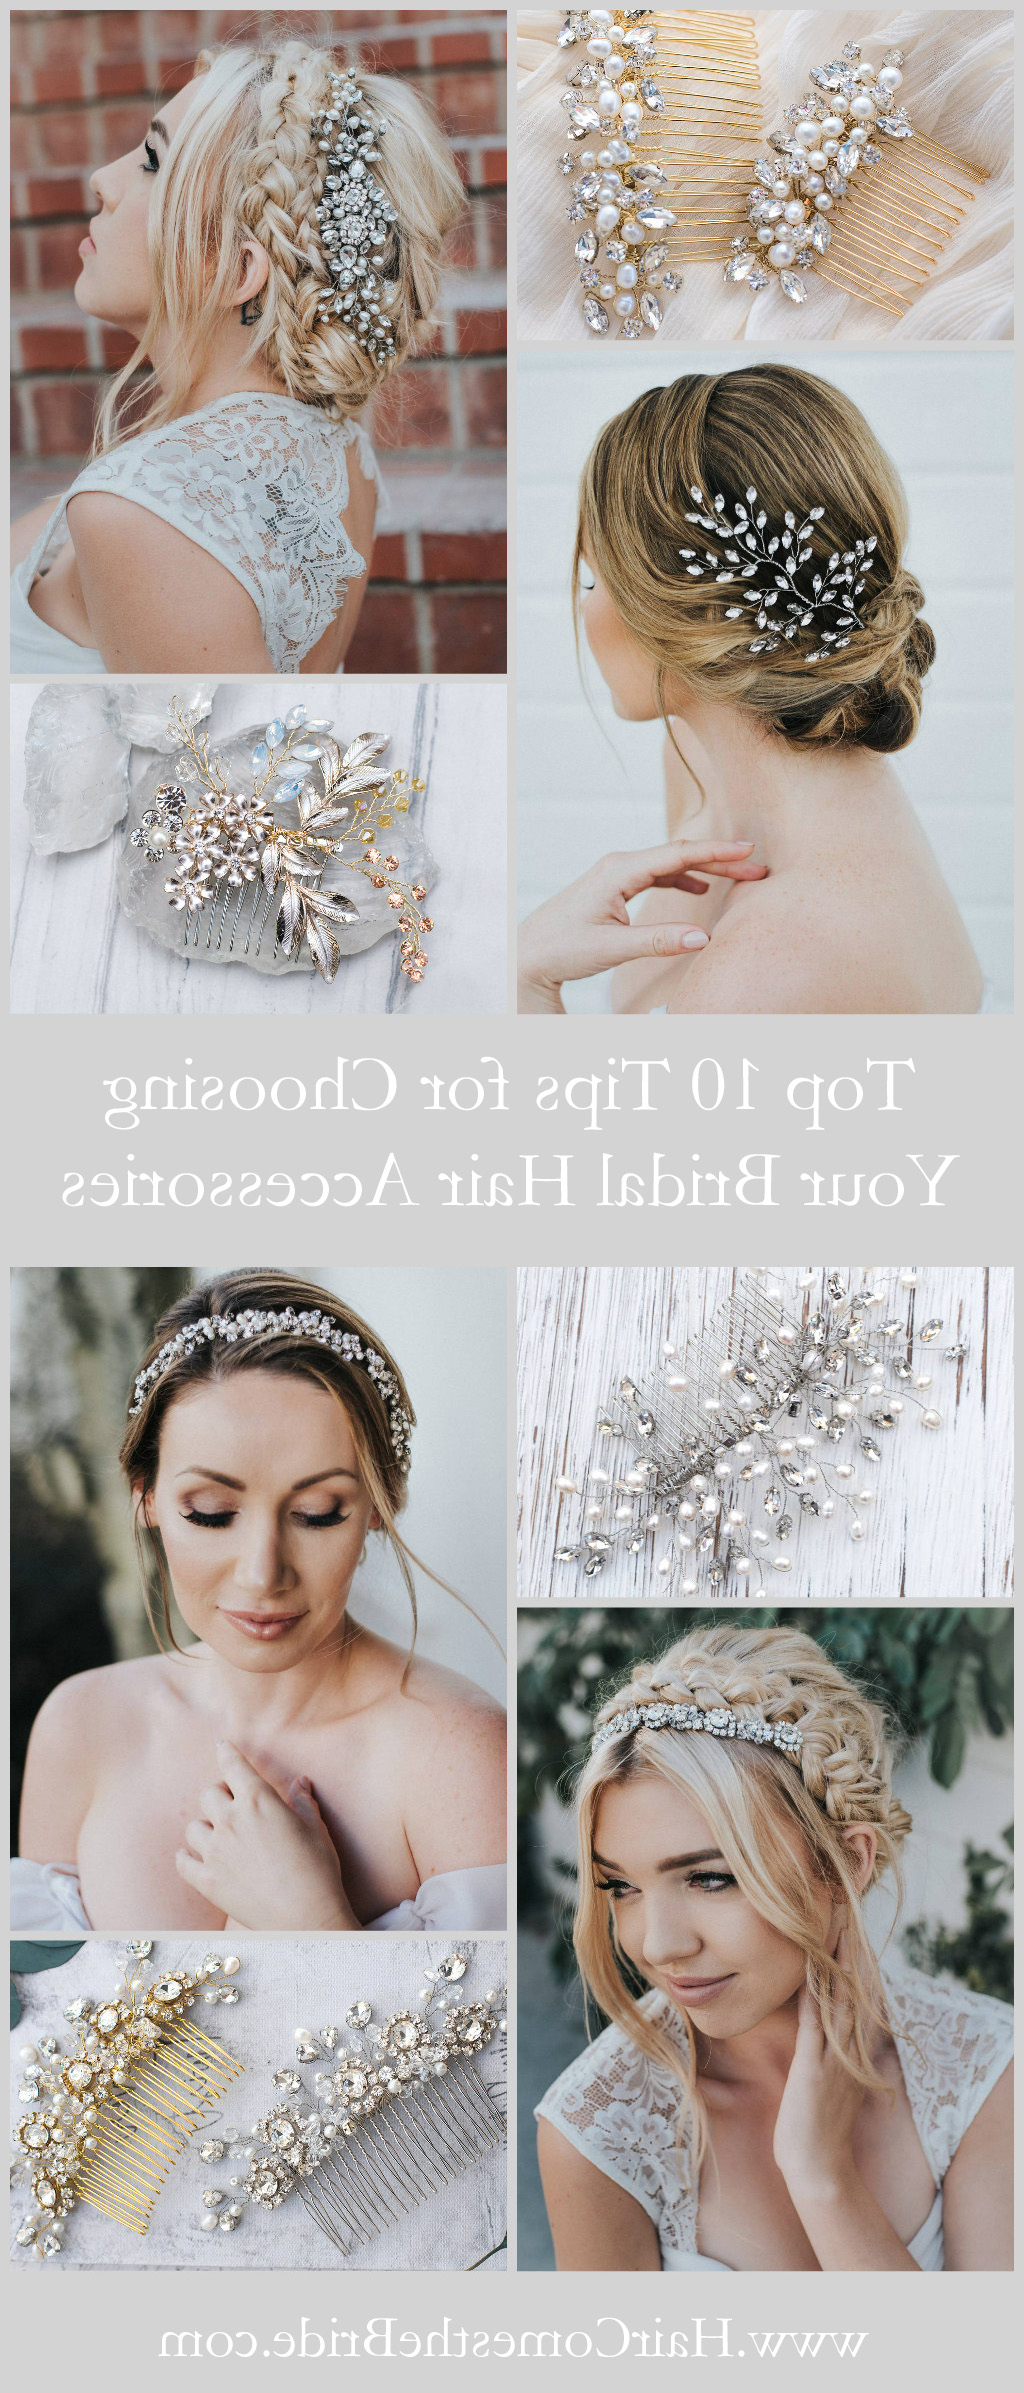 Most Recent Large Curly Bun Bridal Hairstyles With Beaded Clip Regarding Top 10 Tips For Choosing Your Bridal Hair Accessories – Hair Comes (View 9 of 20)